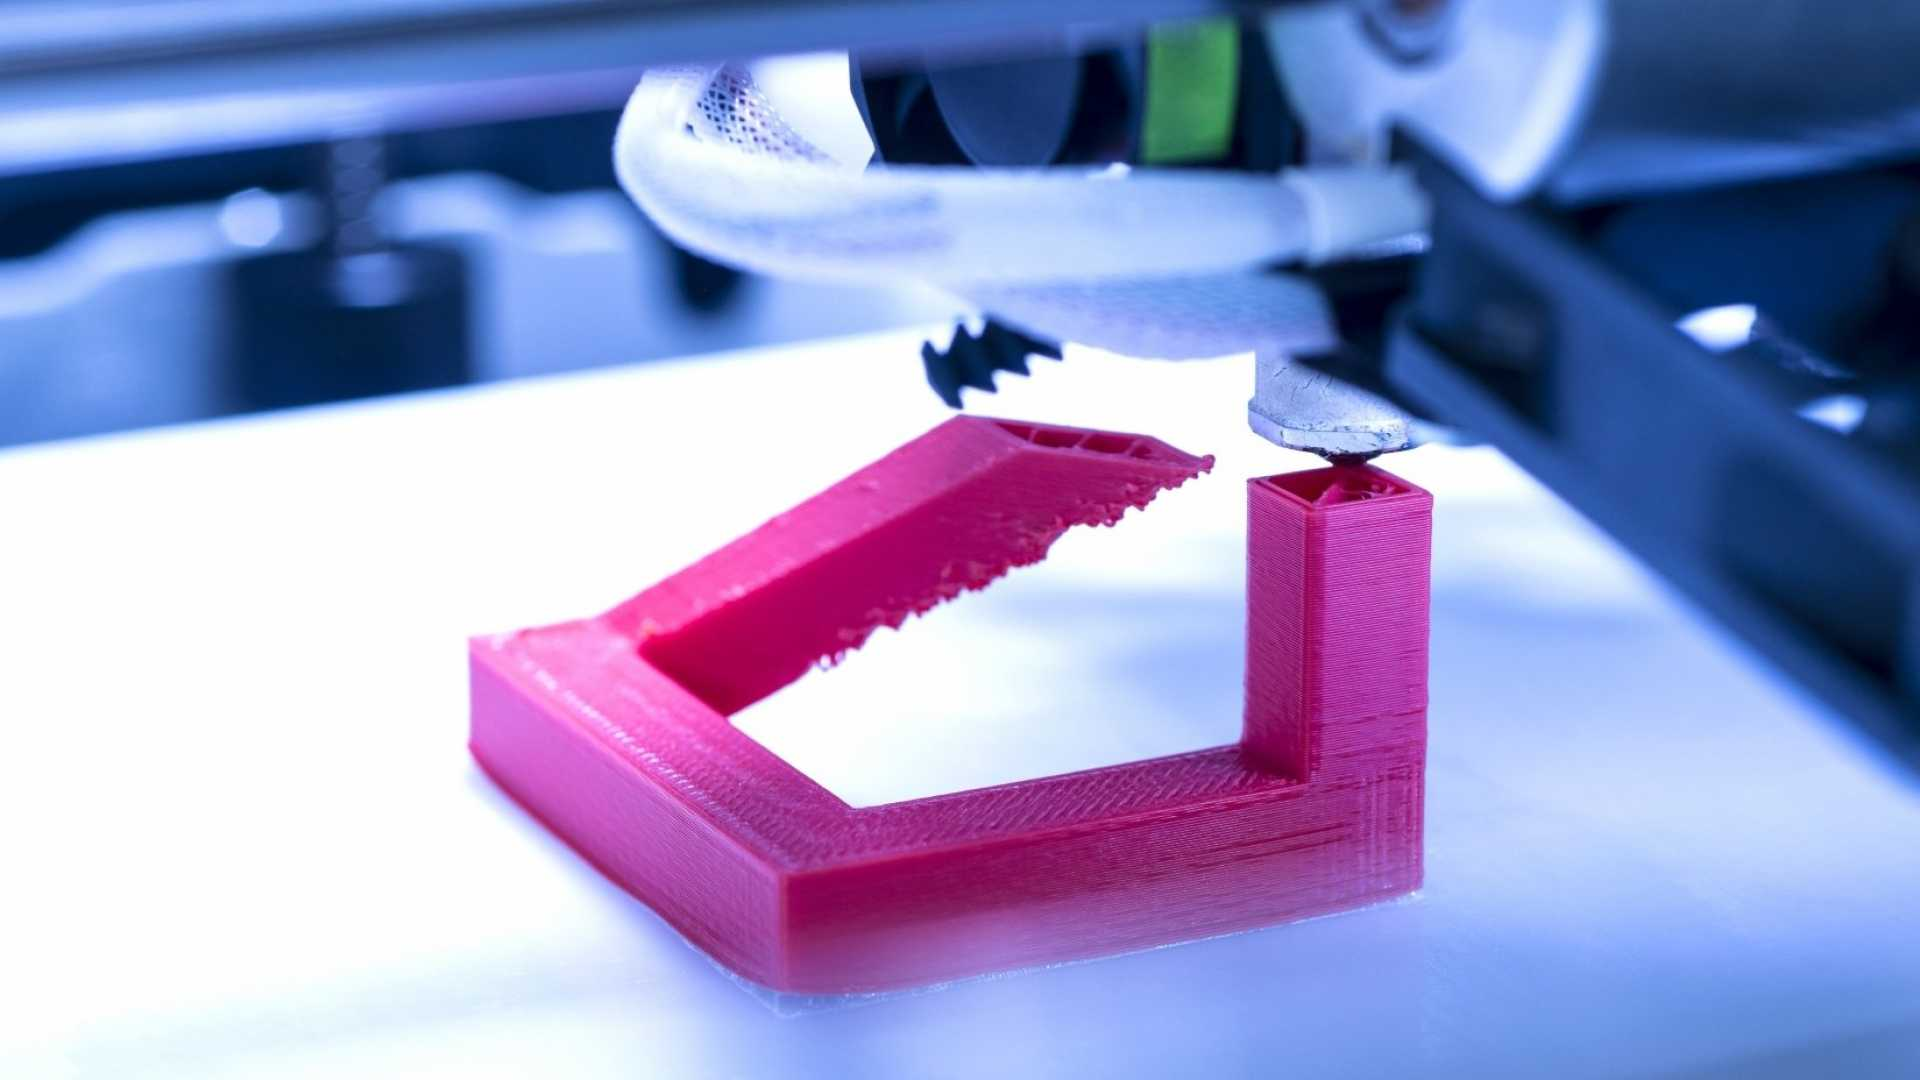 These Are the Top 5 Industries 3-D Printing Will Disrupt